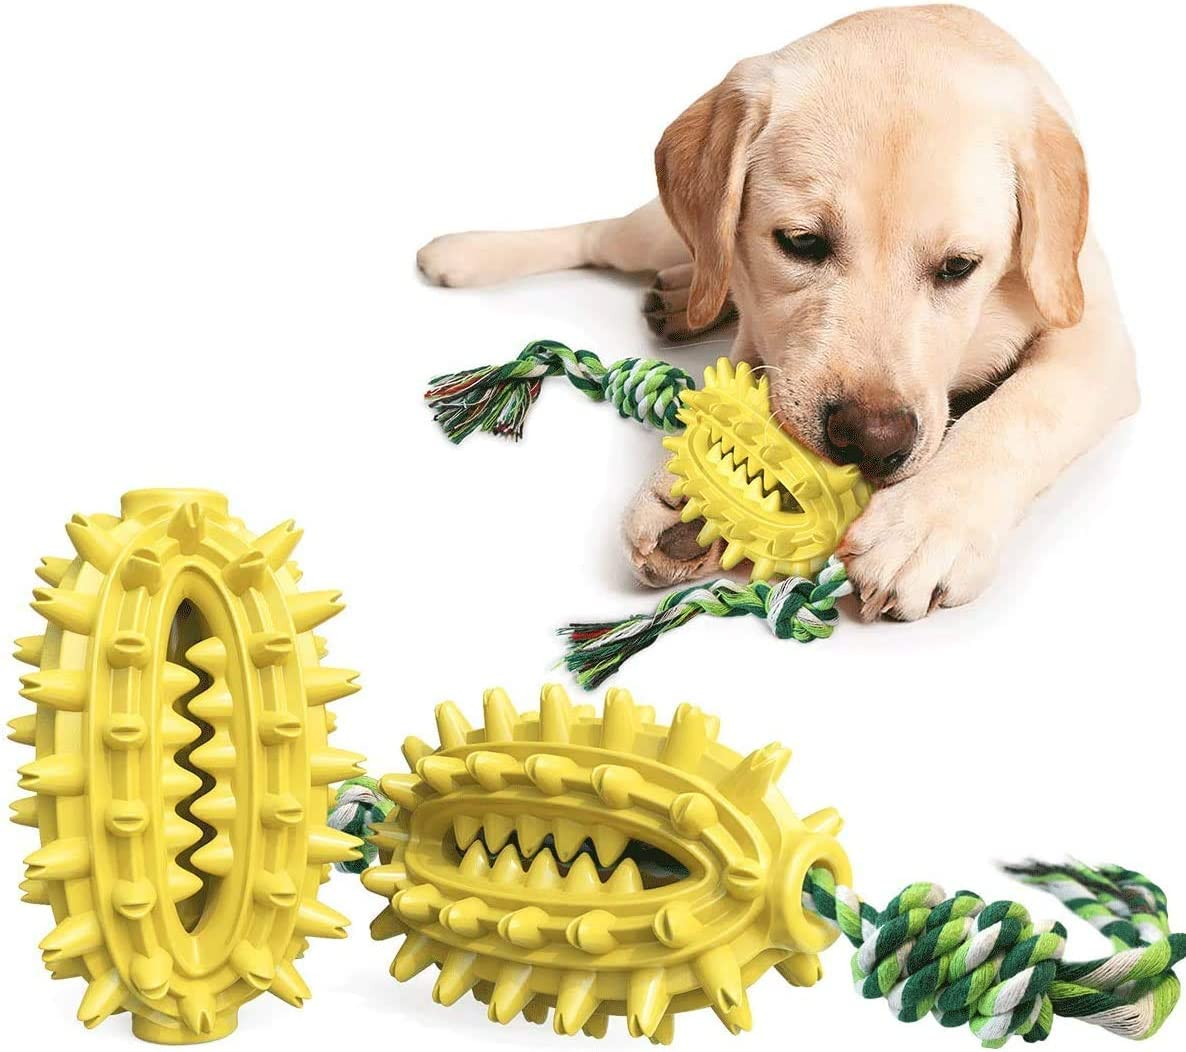 iBeazhu Dog Chew Toothbrush Toys with Teeth Cleaning and Food Dispensing Features, Dog Chew Toys for Chewer Cleaning, with Cotton Rope Interactive, Durable, Dog Toys for Large Medium Small Breed